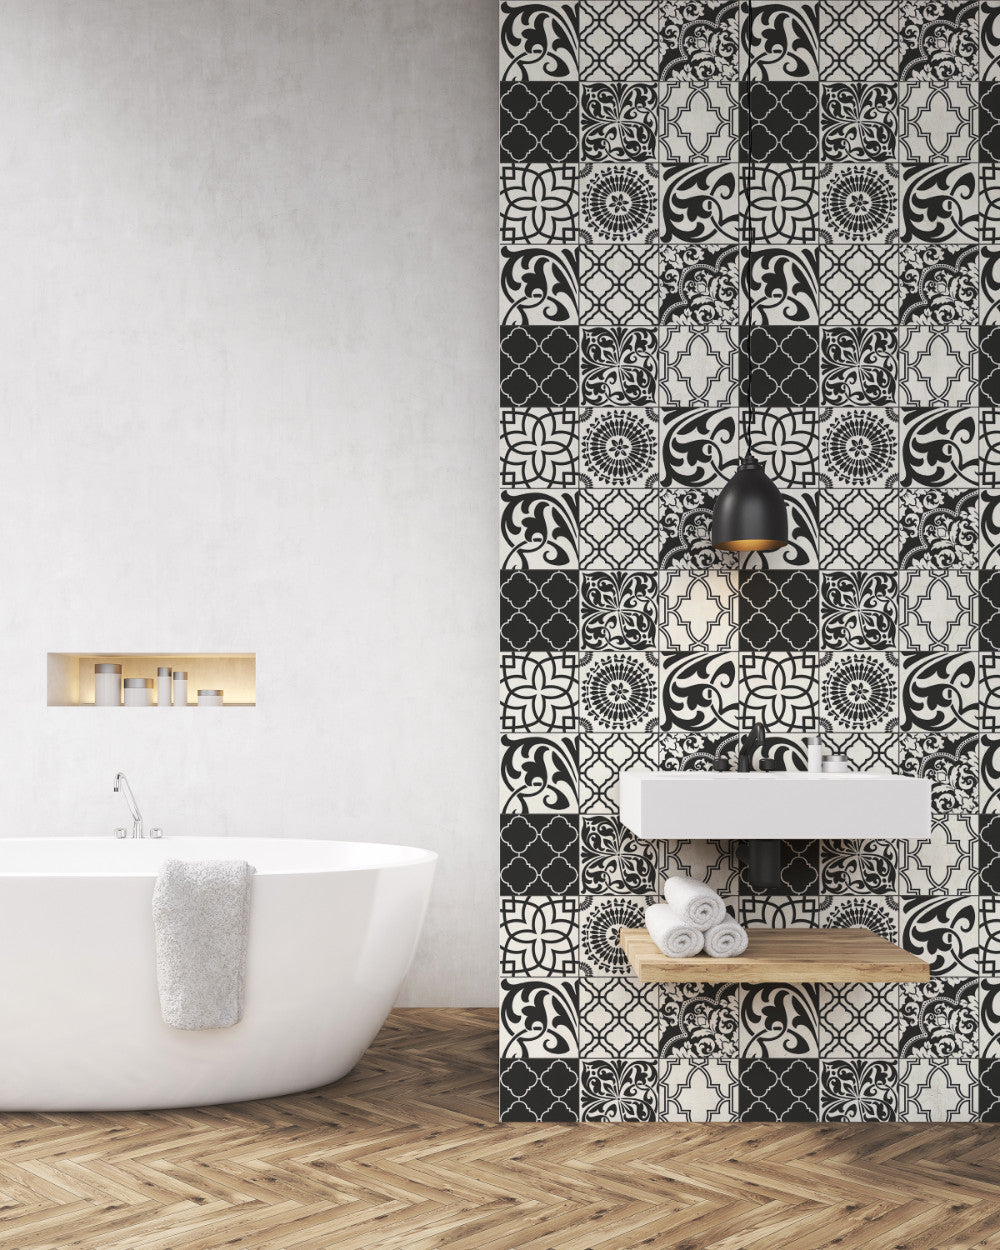 Graphic Tile Peel-and-Stick Wallpaper in Black and White by NextWall ...